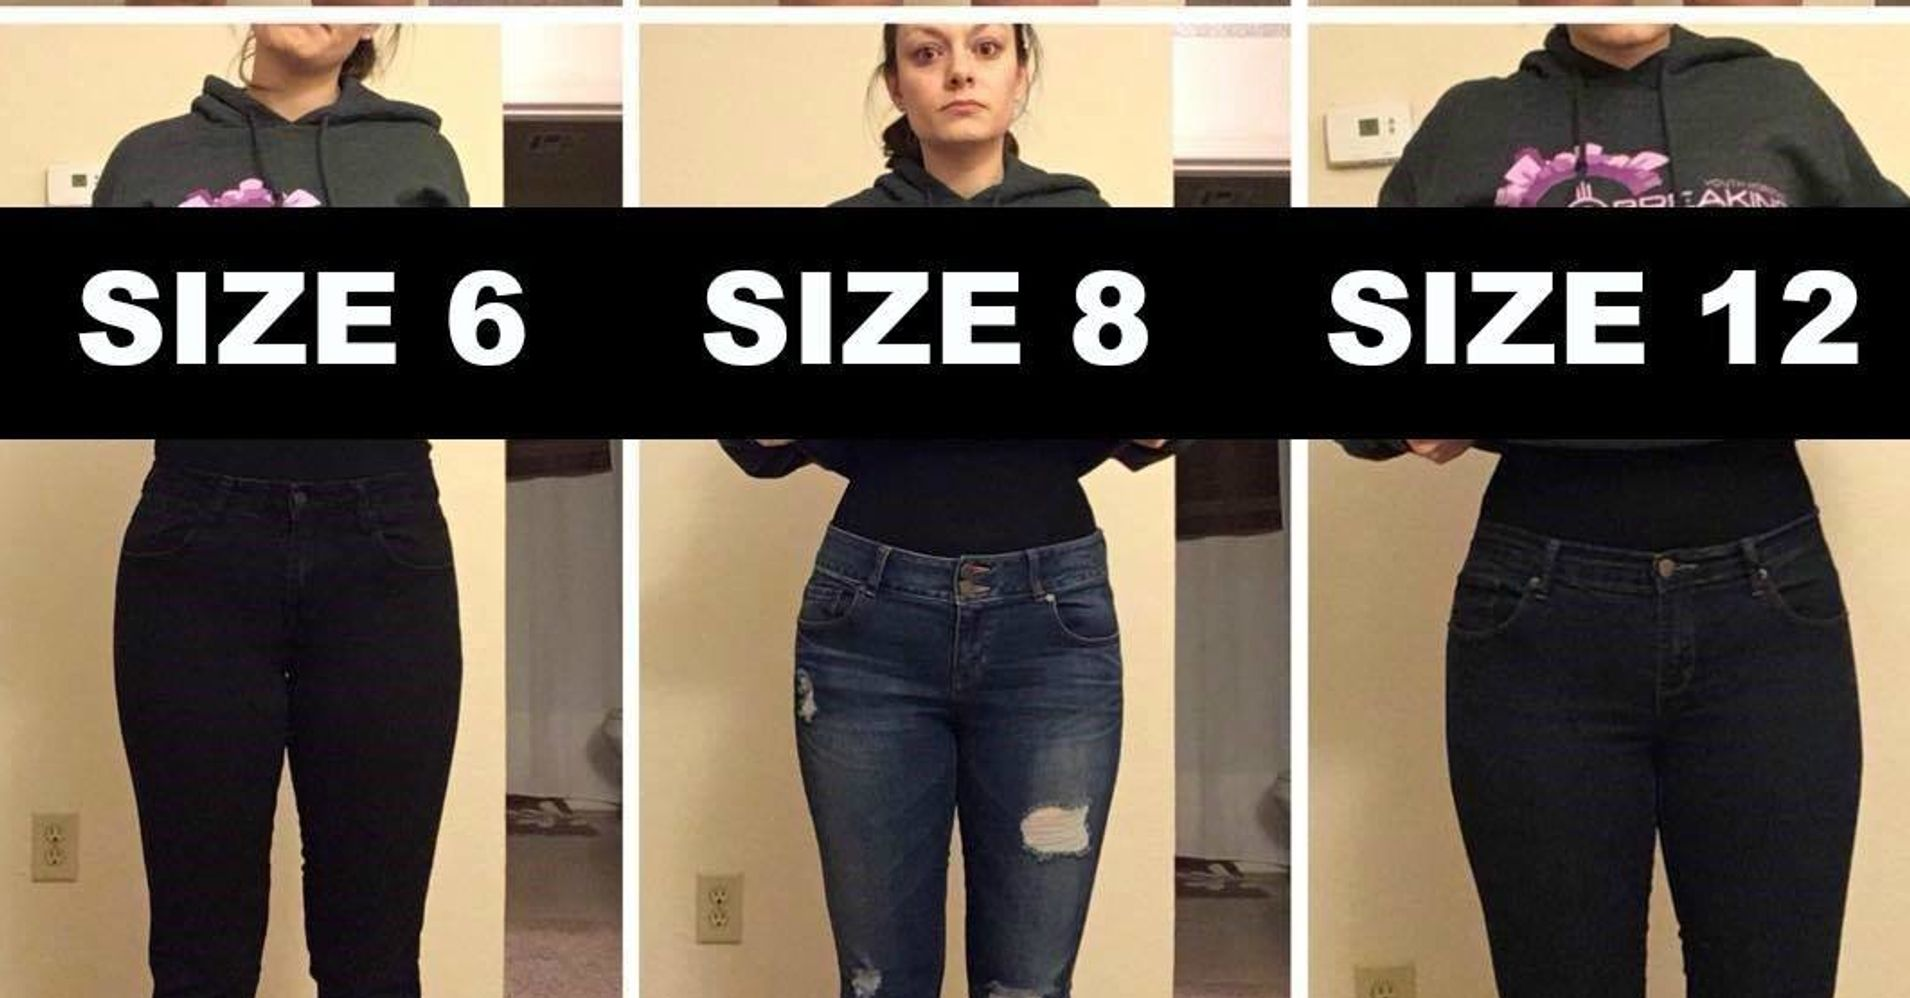 Live Life Dramatically Apparel By Ludlam Dramatics: Woman Poses In Varying Pants Sizes To Make A Point About